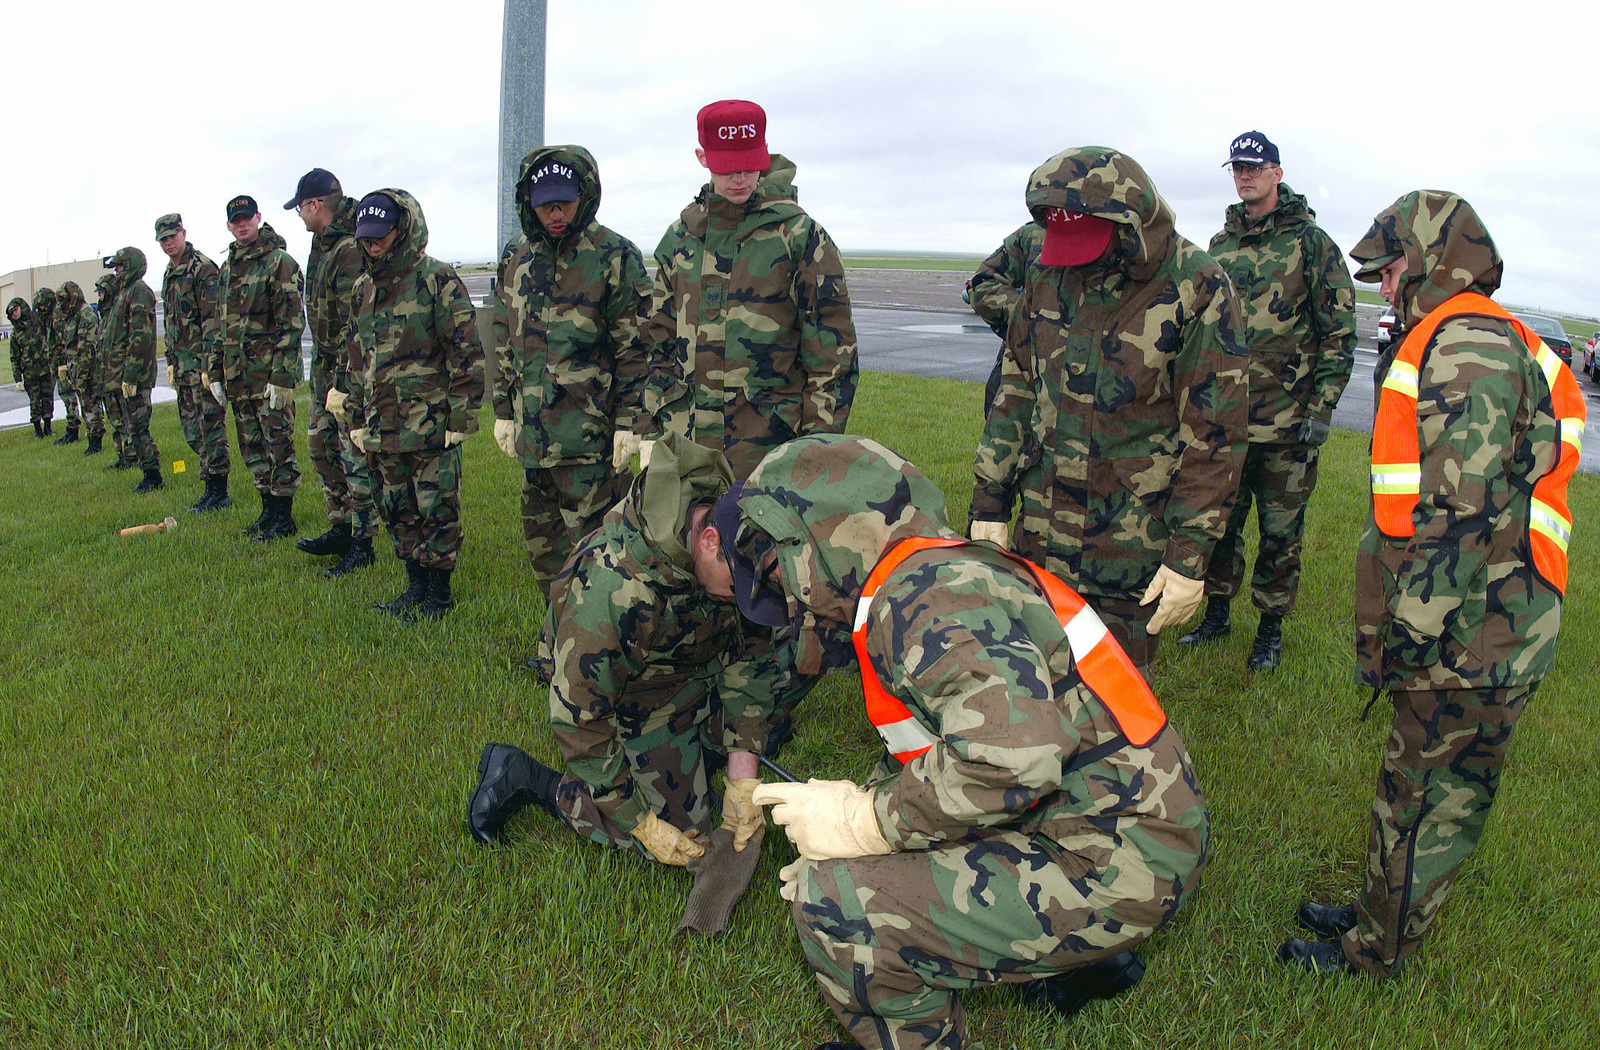 US Air Force (USAF) Airmen assigned to the 341st Services Squadron (SVS), and the 341st Comptrollers Squadron (CPTS) Search and Recovery Team, mark and collect body parts from a simulated crash scene, at Malmstrom Air Force Base (AFB), Montana (MO), during the Operational Readiness Inspection/Nuclear Surety Inspection (NSI) Exercise (ORI/NSI)